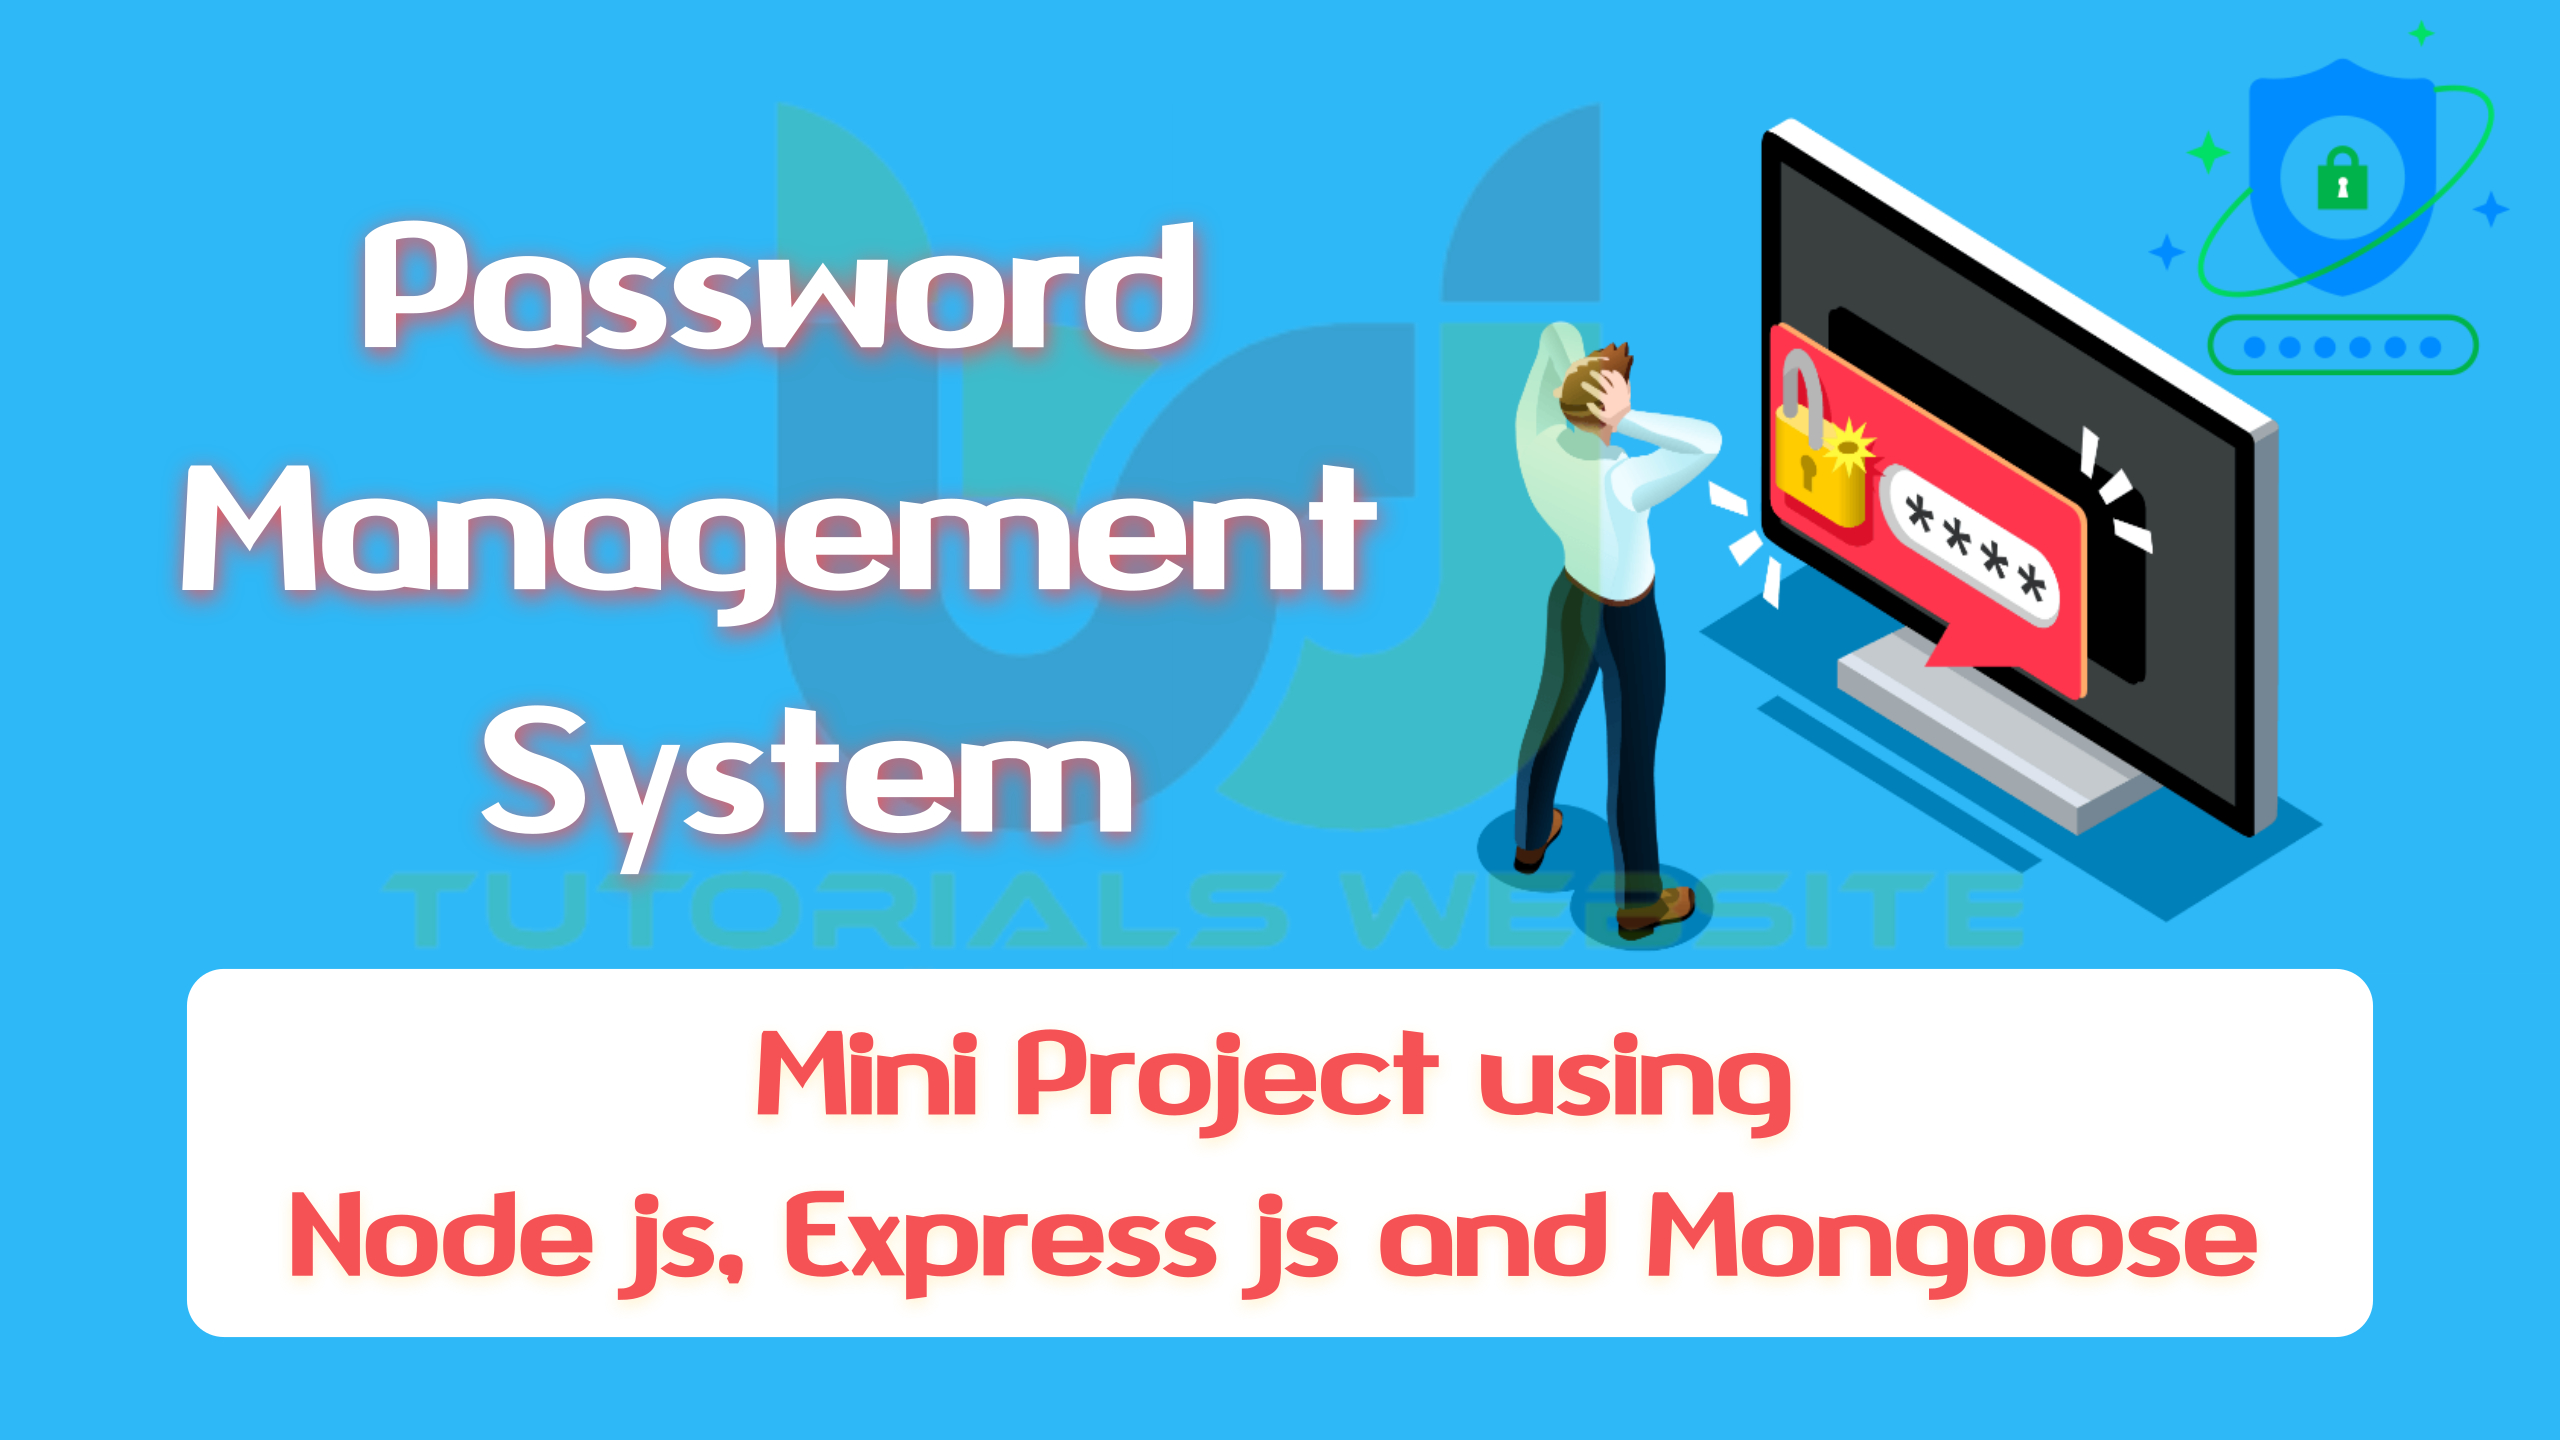 Mini Projects for Freshers using Node js, Express Js and MongoDB